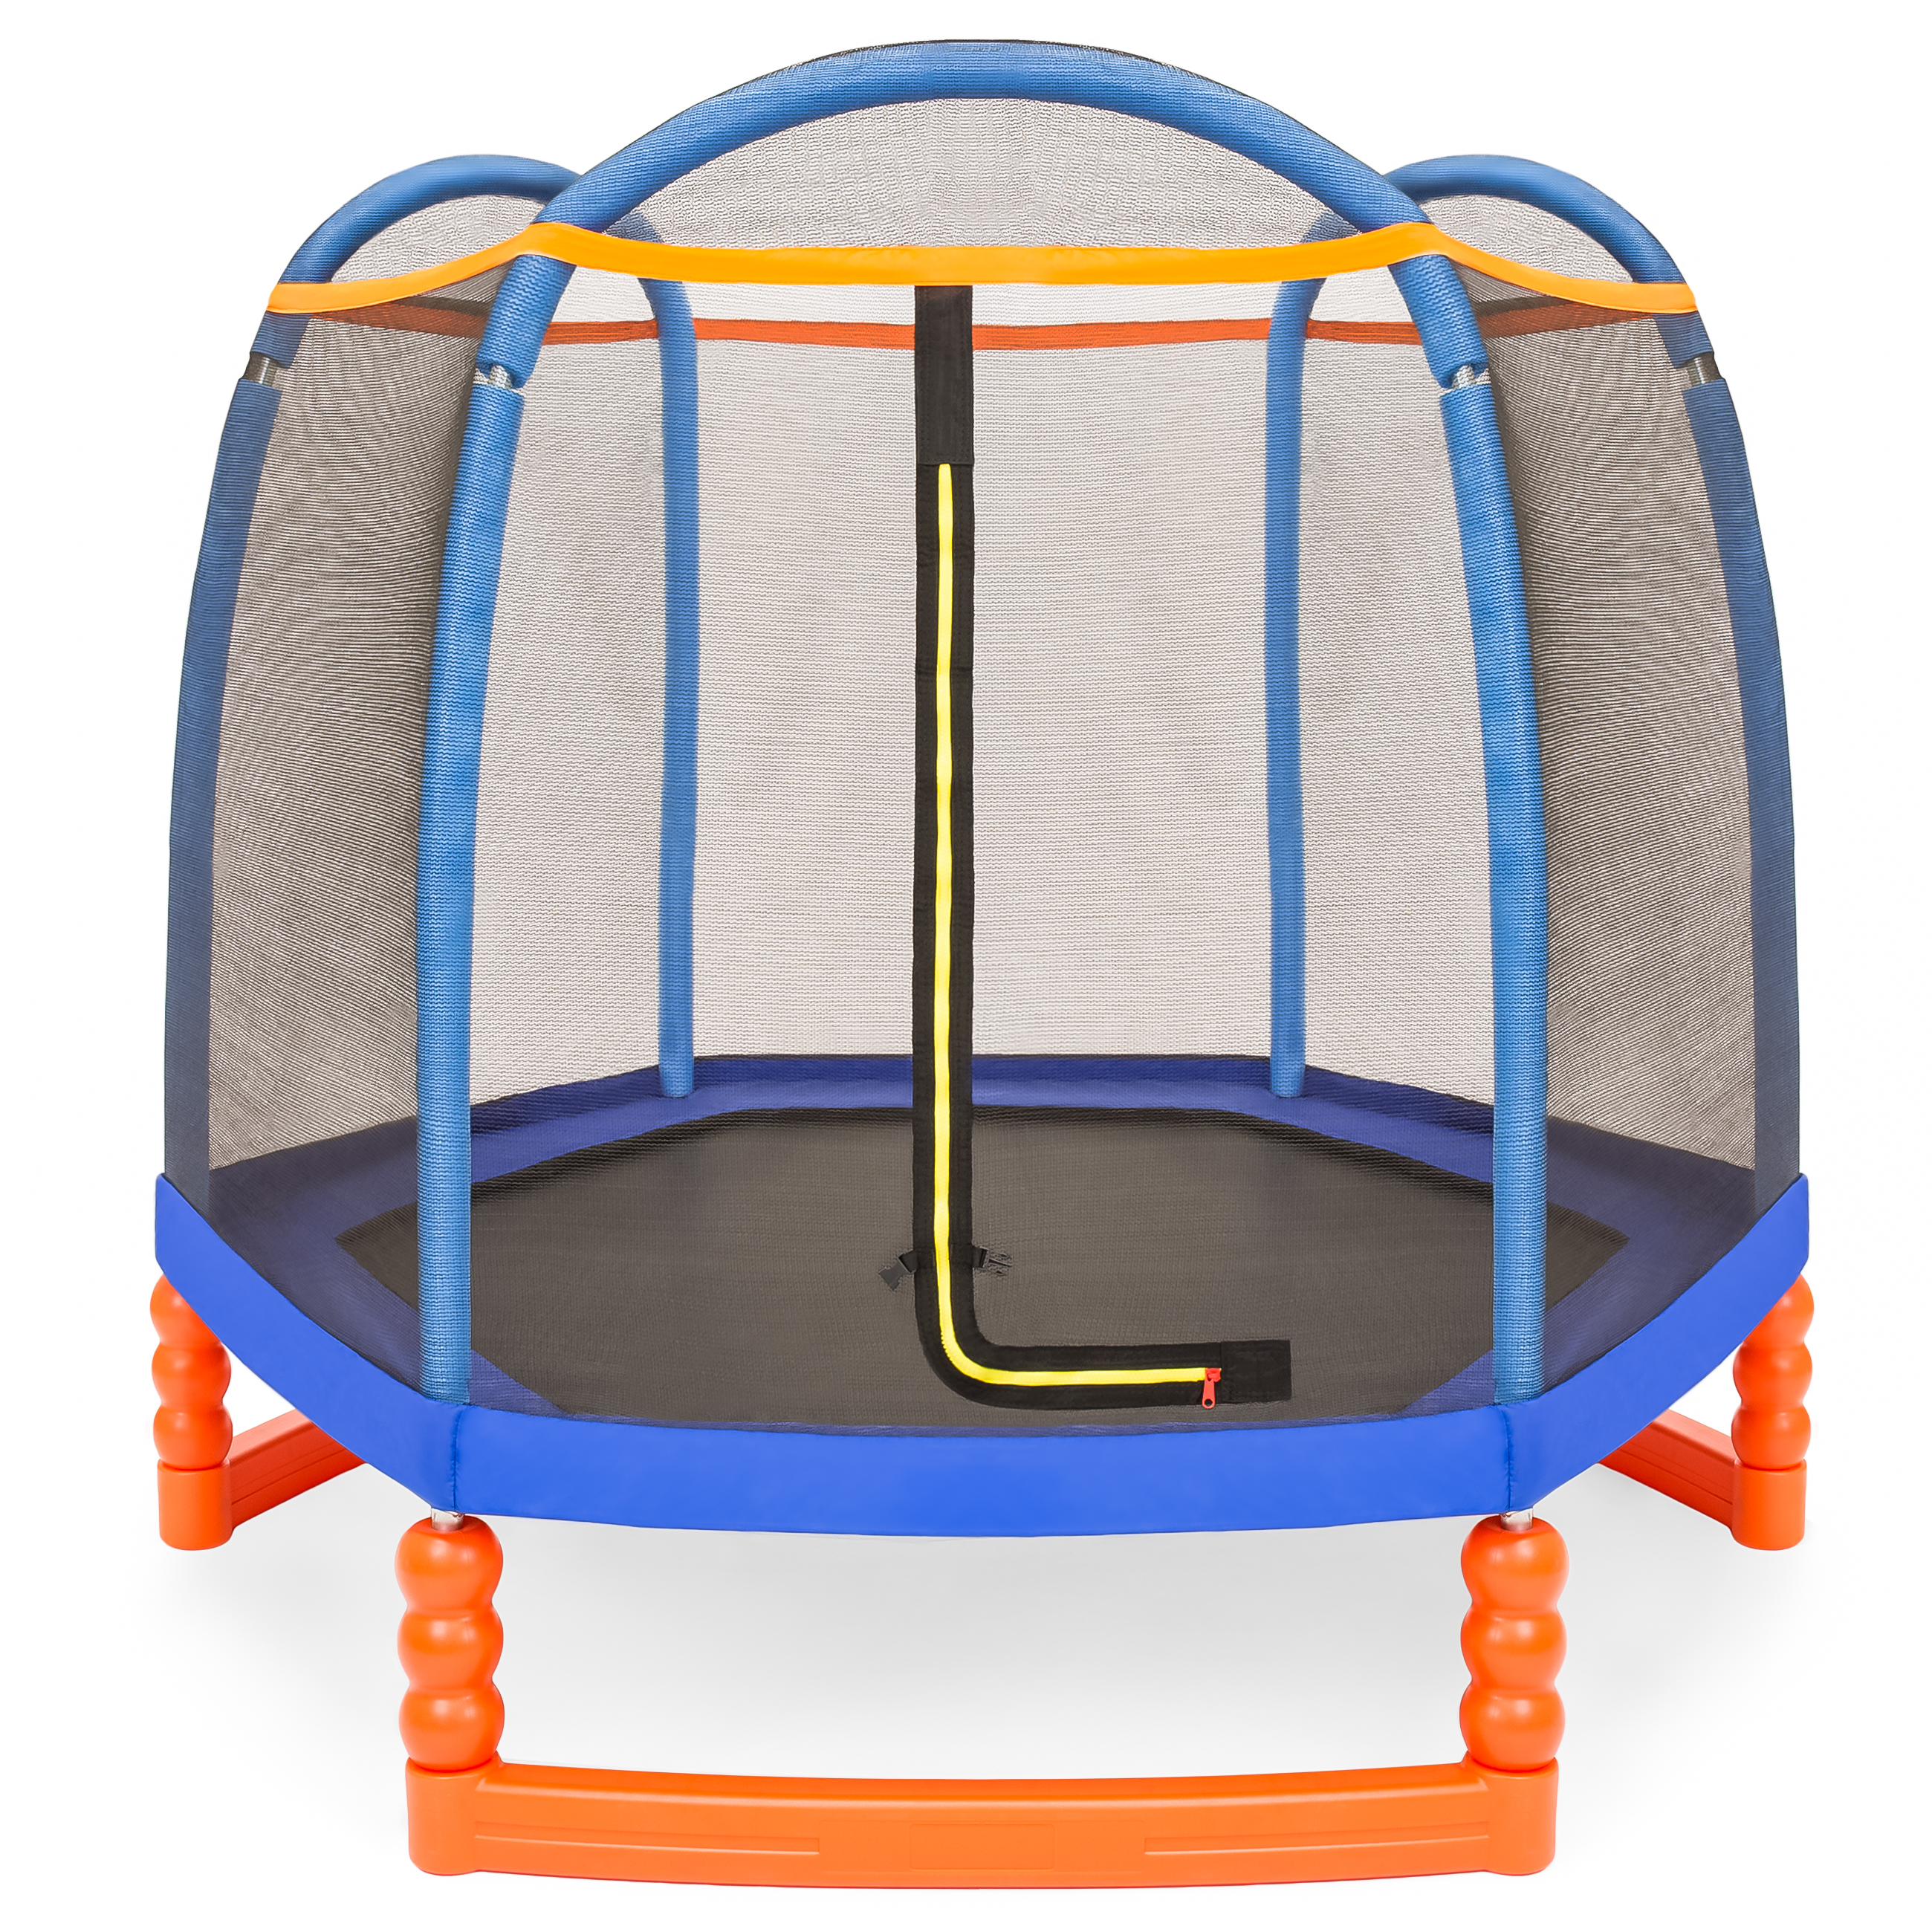 Best Choice Products 7ft Kids Outdoor Round Mini Trampoline w/ Enclosure Safety Net Pad, Built-In Zipper, Heavy-Duty Metal Frame - Multicolor